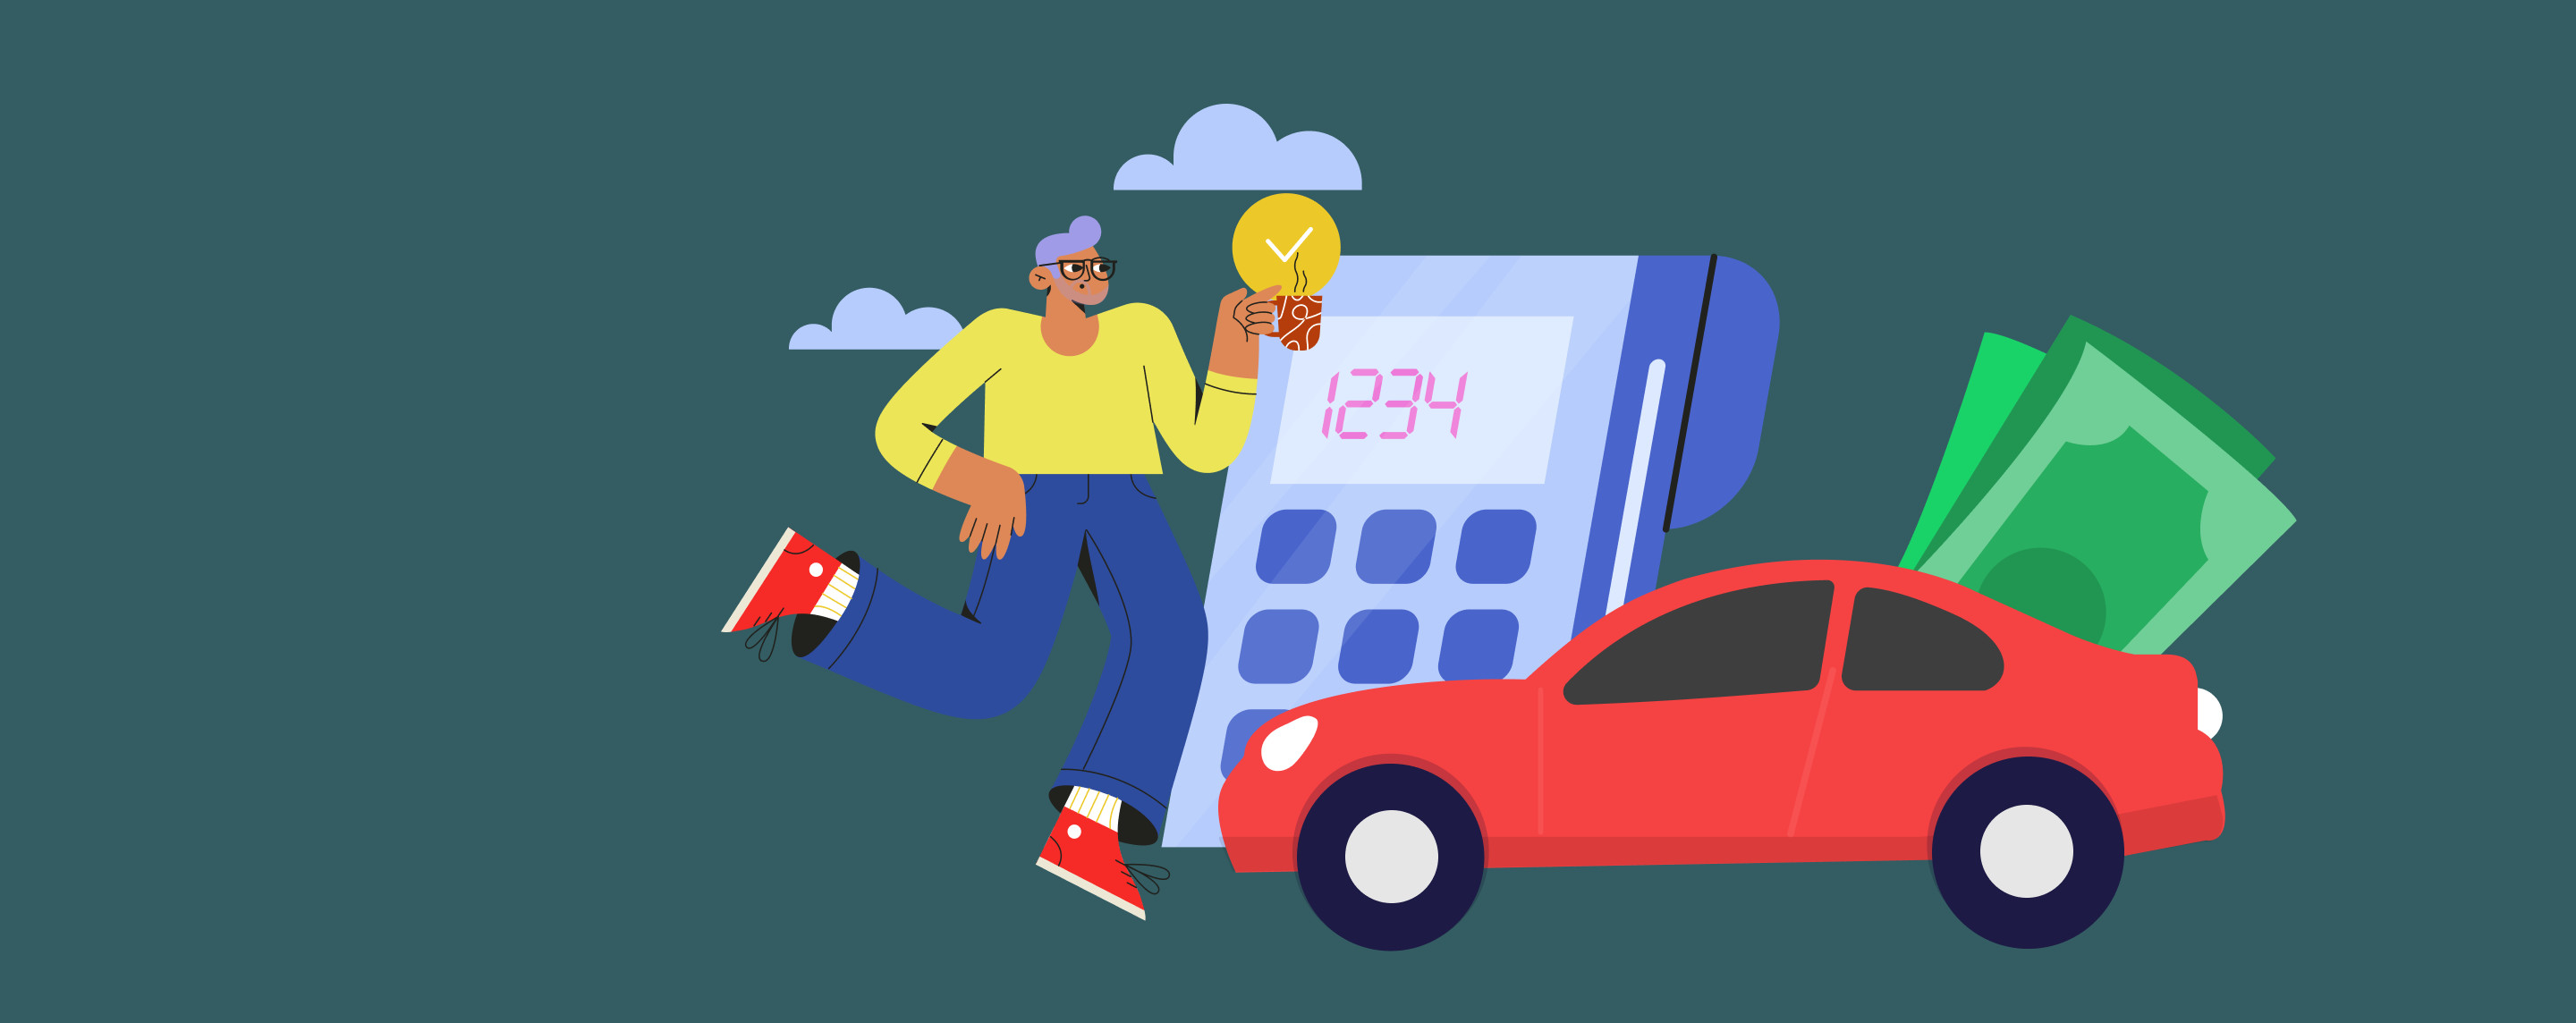 How to Refinance an Auto Loan; Learn how to refinance your auto loan so you have everything you need before you talk to a new lender. Find out more from Lantern by SoFi today!